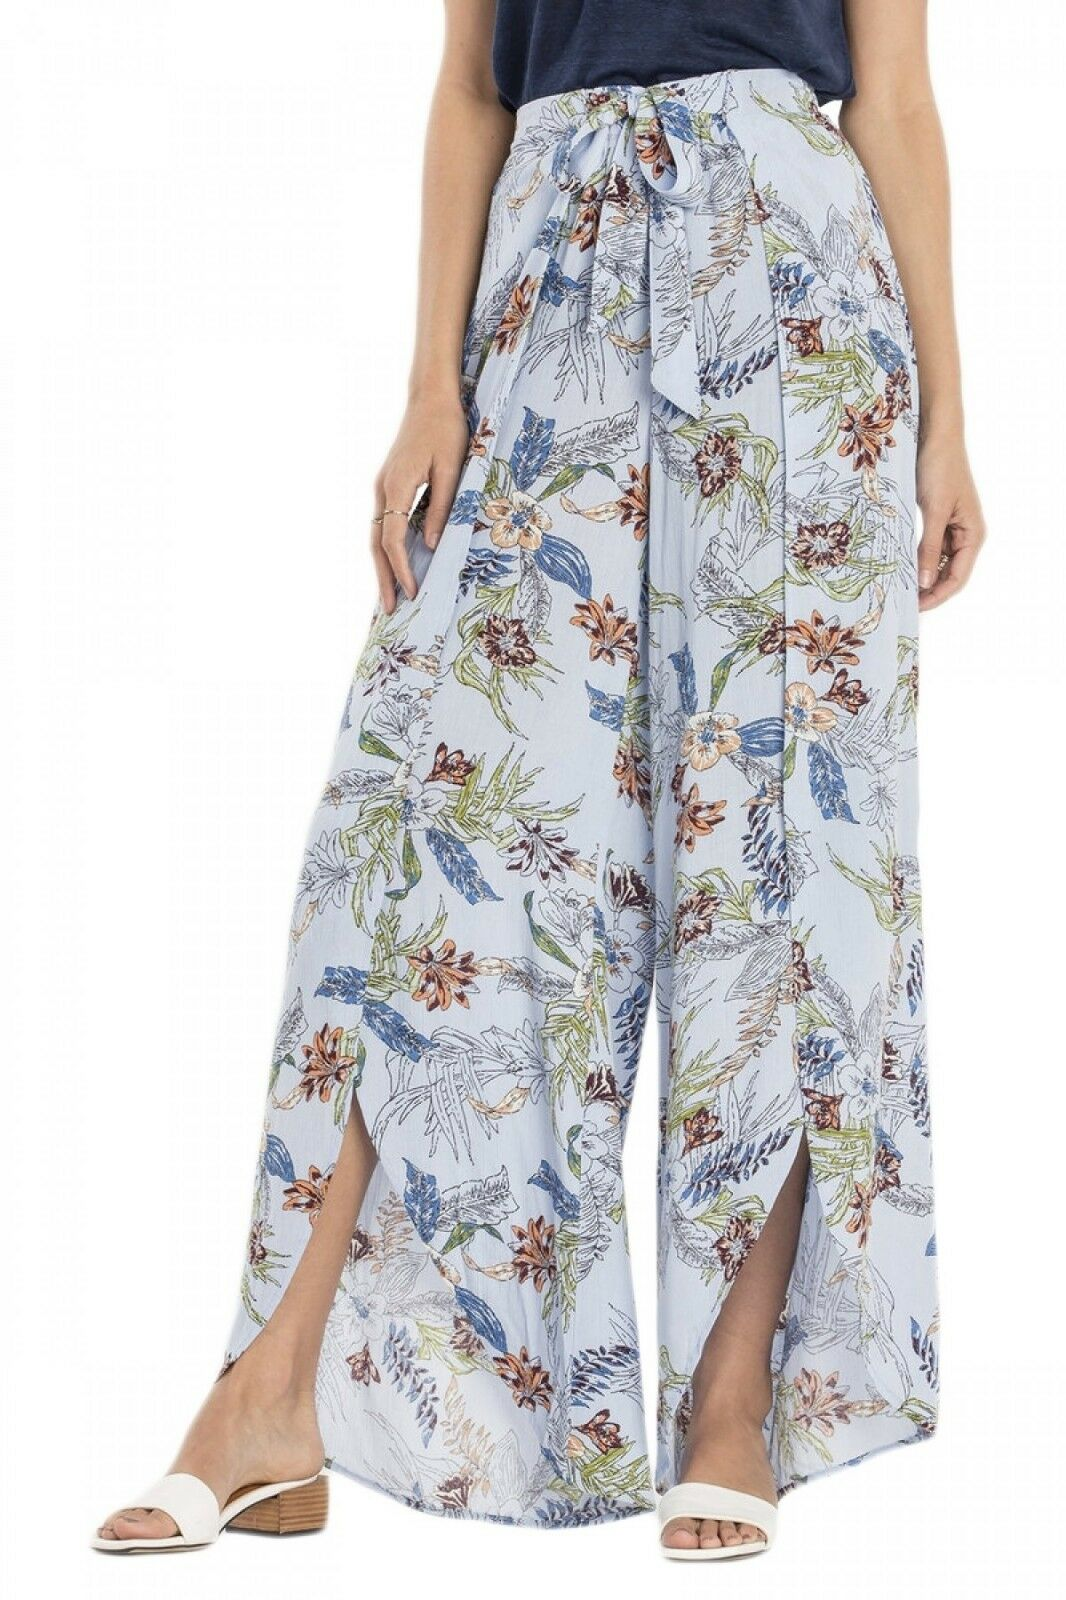 Miss Me Light bluee Floral Print Split Palazzos MMP0010L